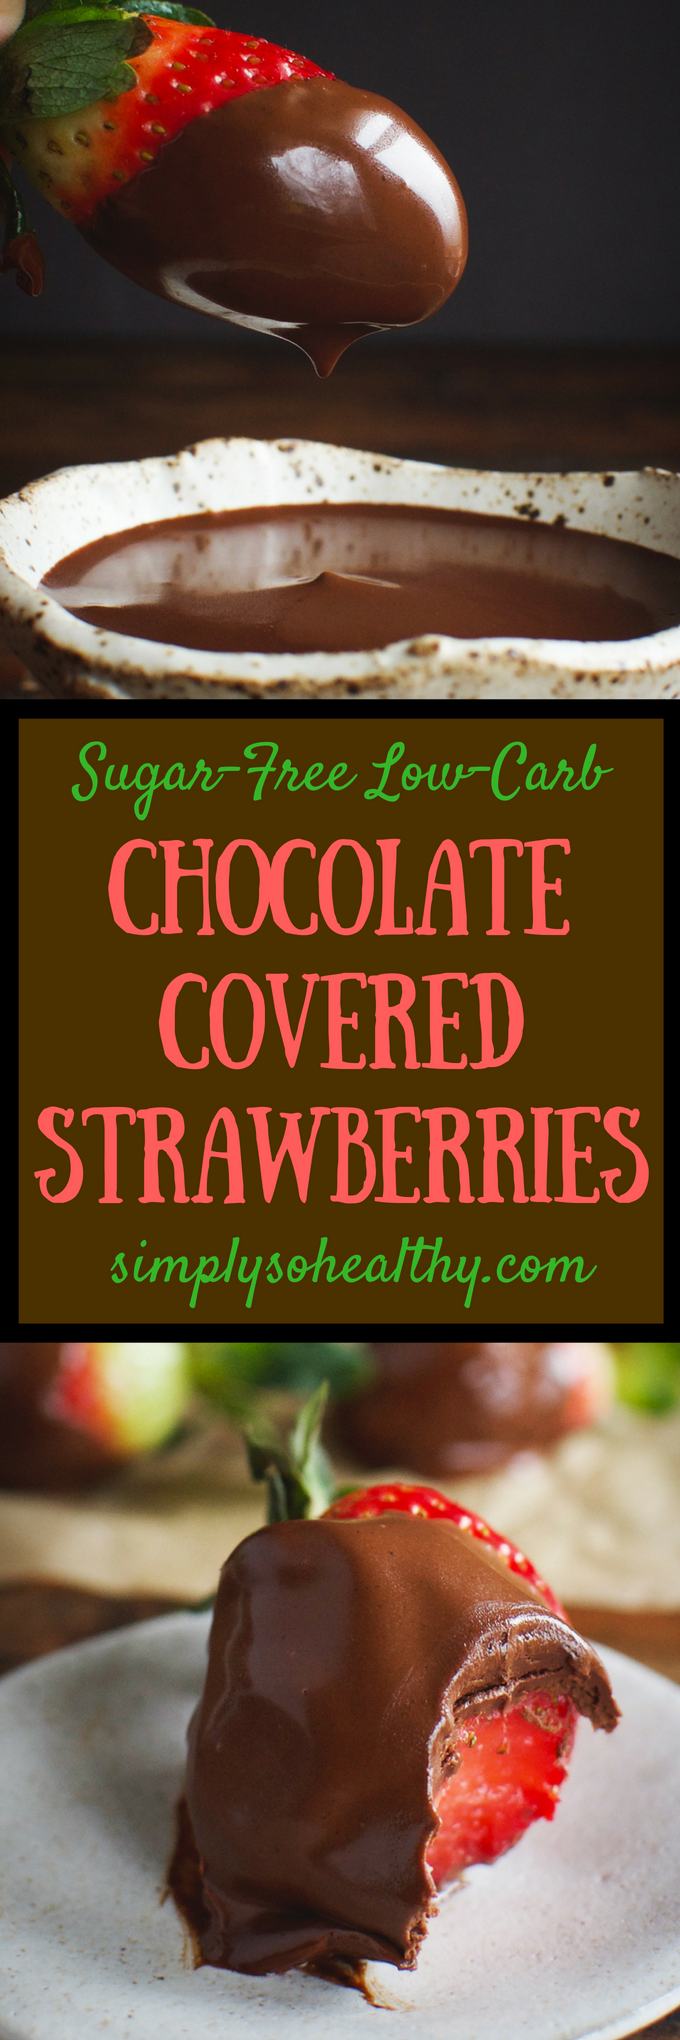 How To Make Chocolate Covered Strawberries With Heavy Cream